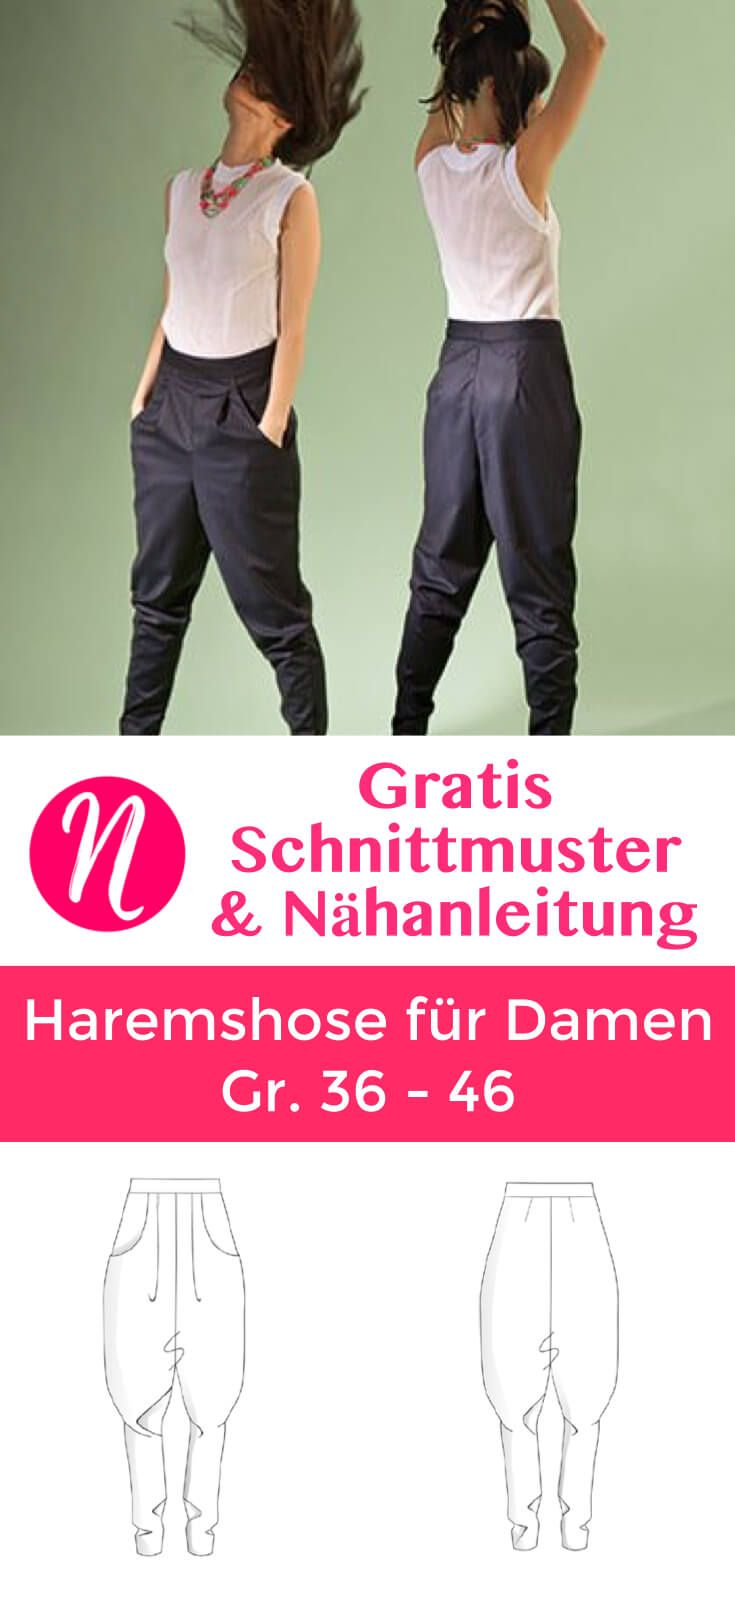 Kostenloses Schnittmuster für eine Haremshose für Damen ❤ Casual-Look: bequem und cool ❤ PDF-Schnittmuster Gr. 36 - 46 ❤ ✂ Nähtalente.de ✂ Free sewing pattern for slouchy woman trouser in size 36 - 46.